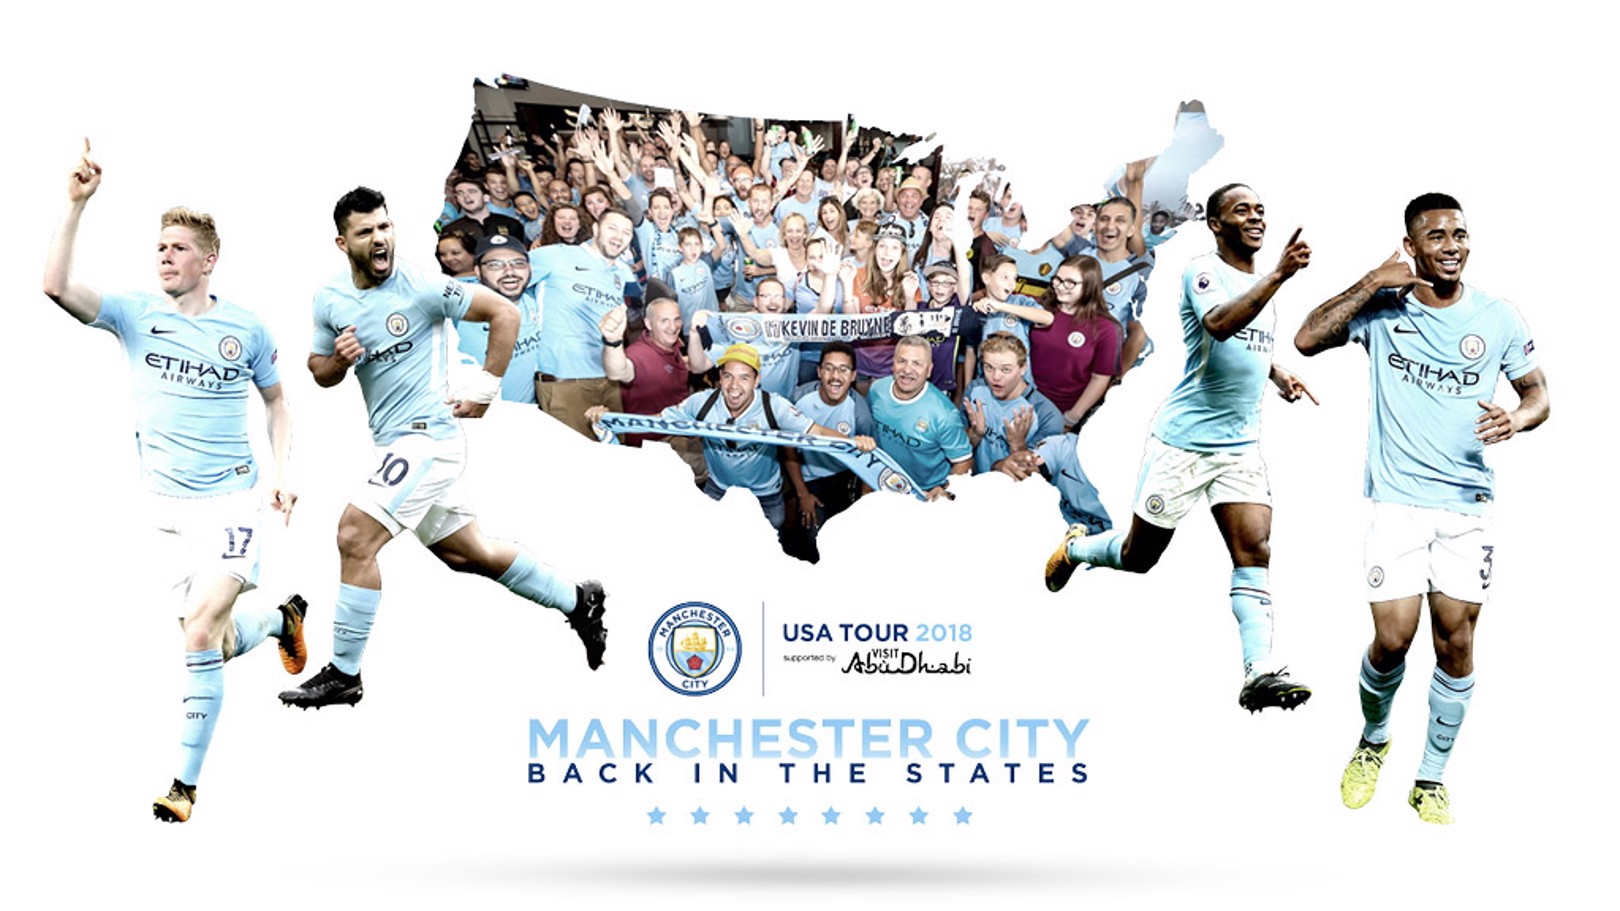 PRE-SEASON: Manchester City are heading back to the United States this summer.